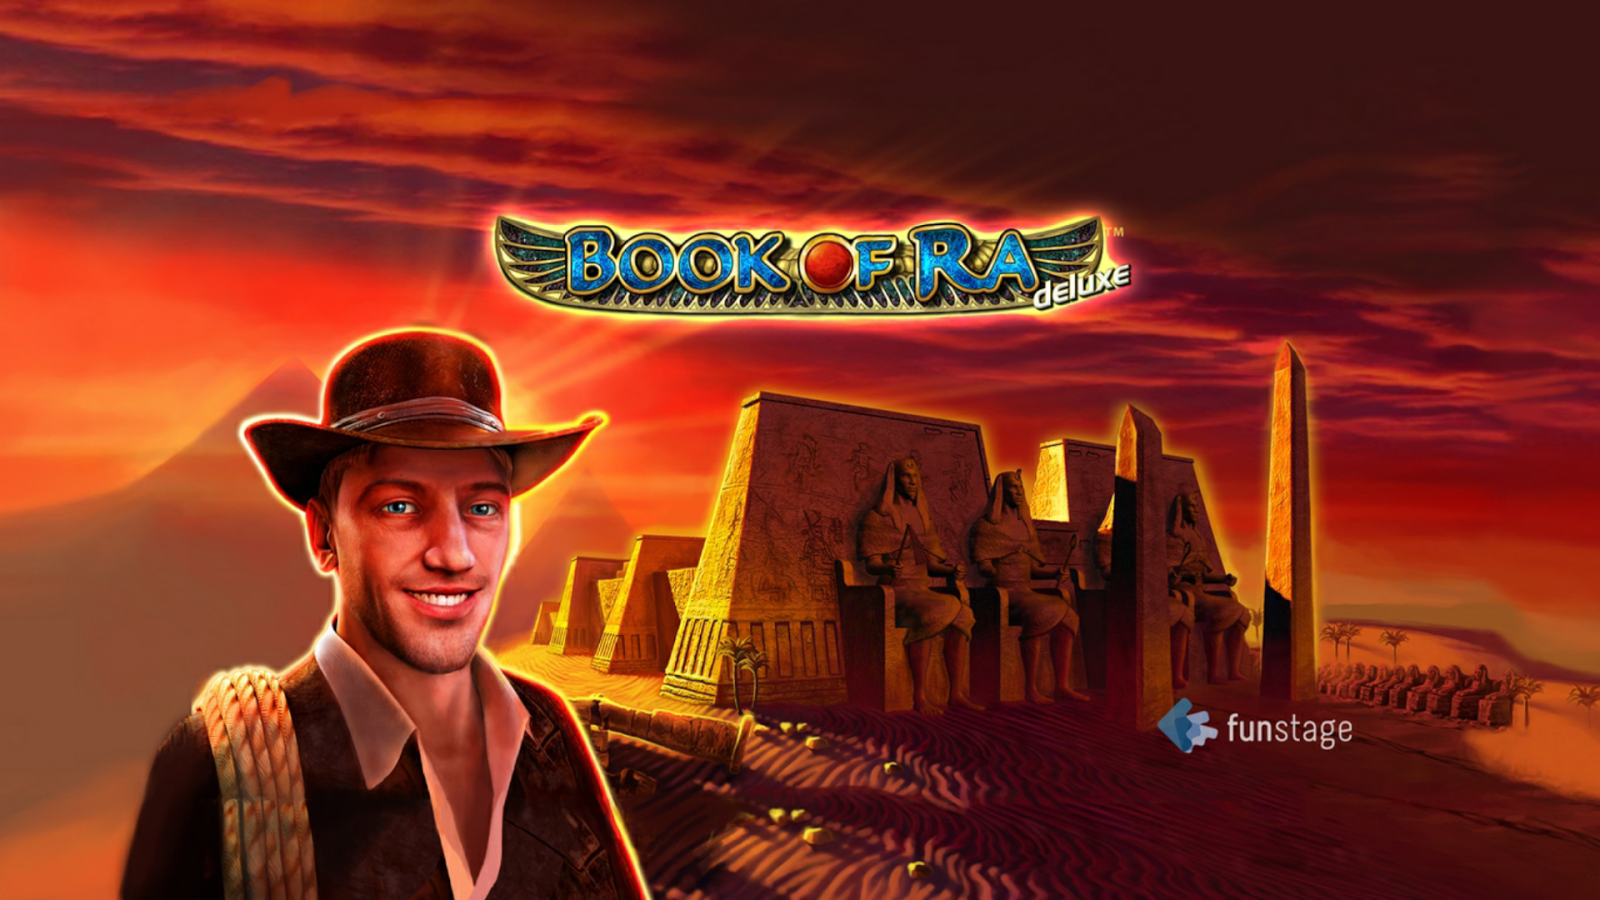 merkur casino online bool of ra